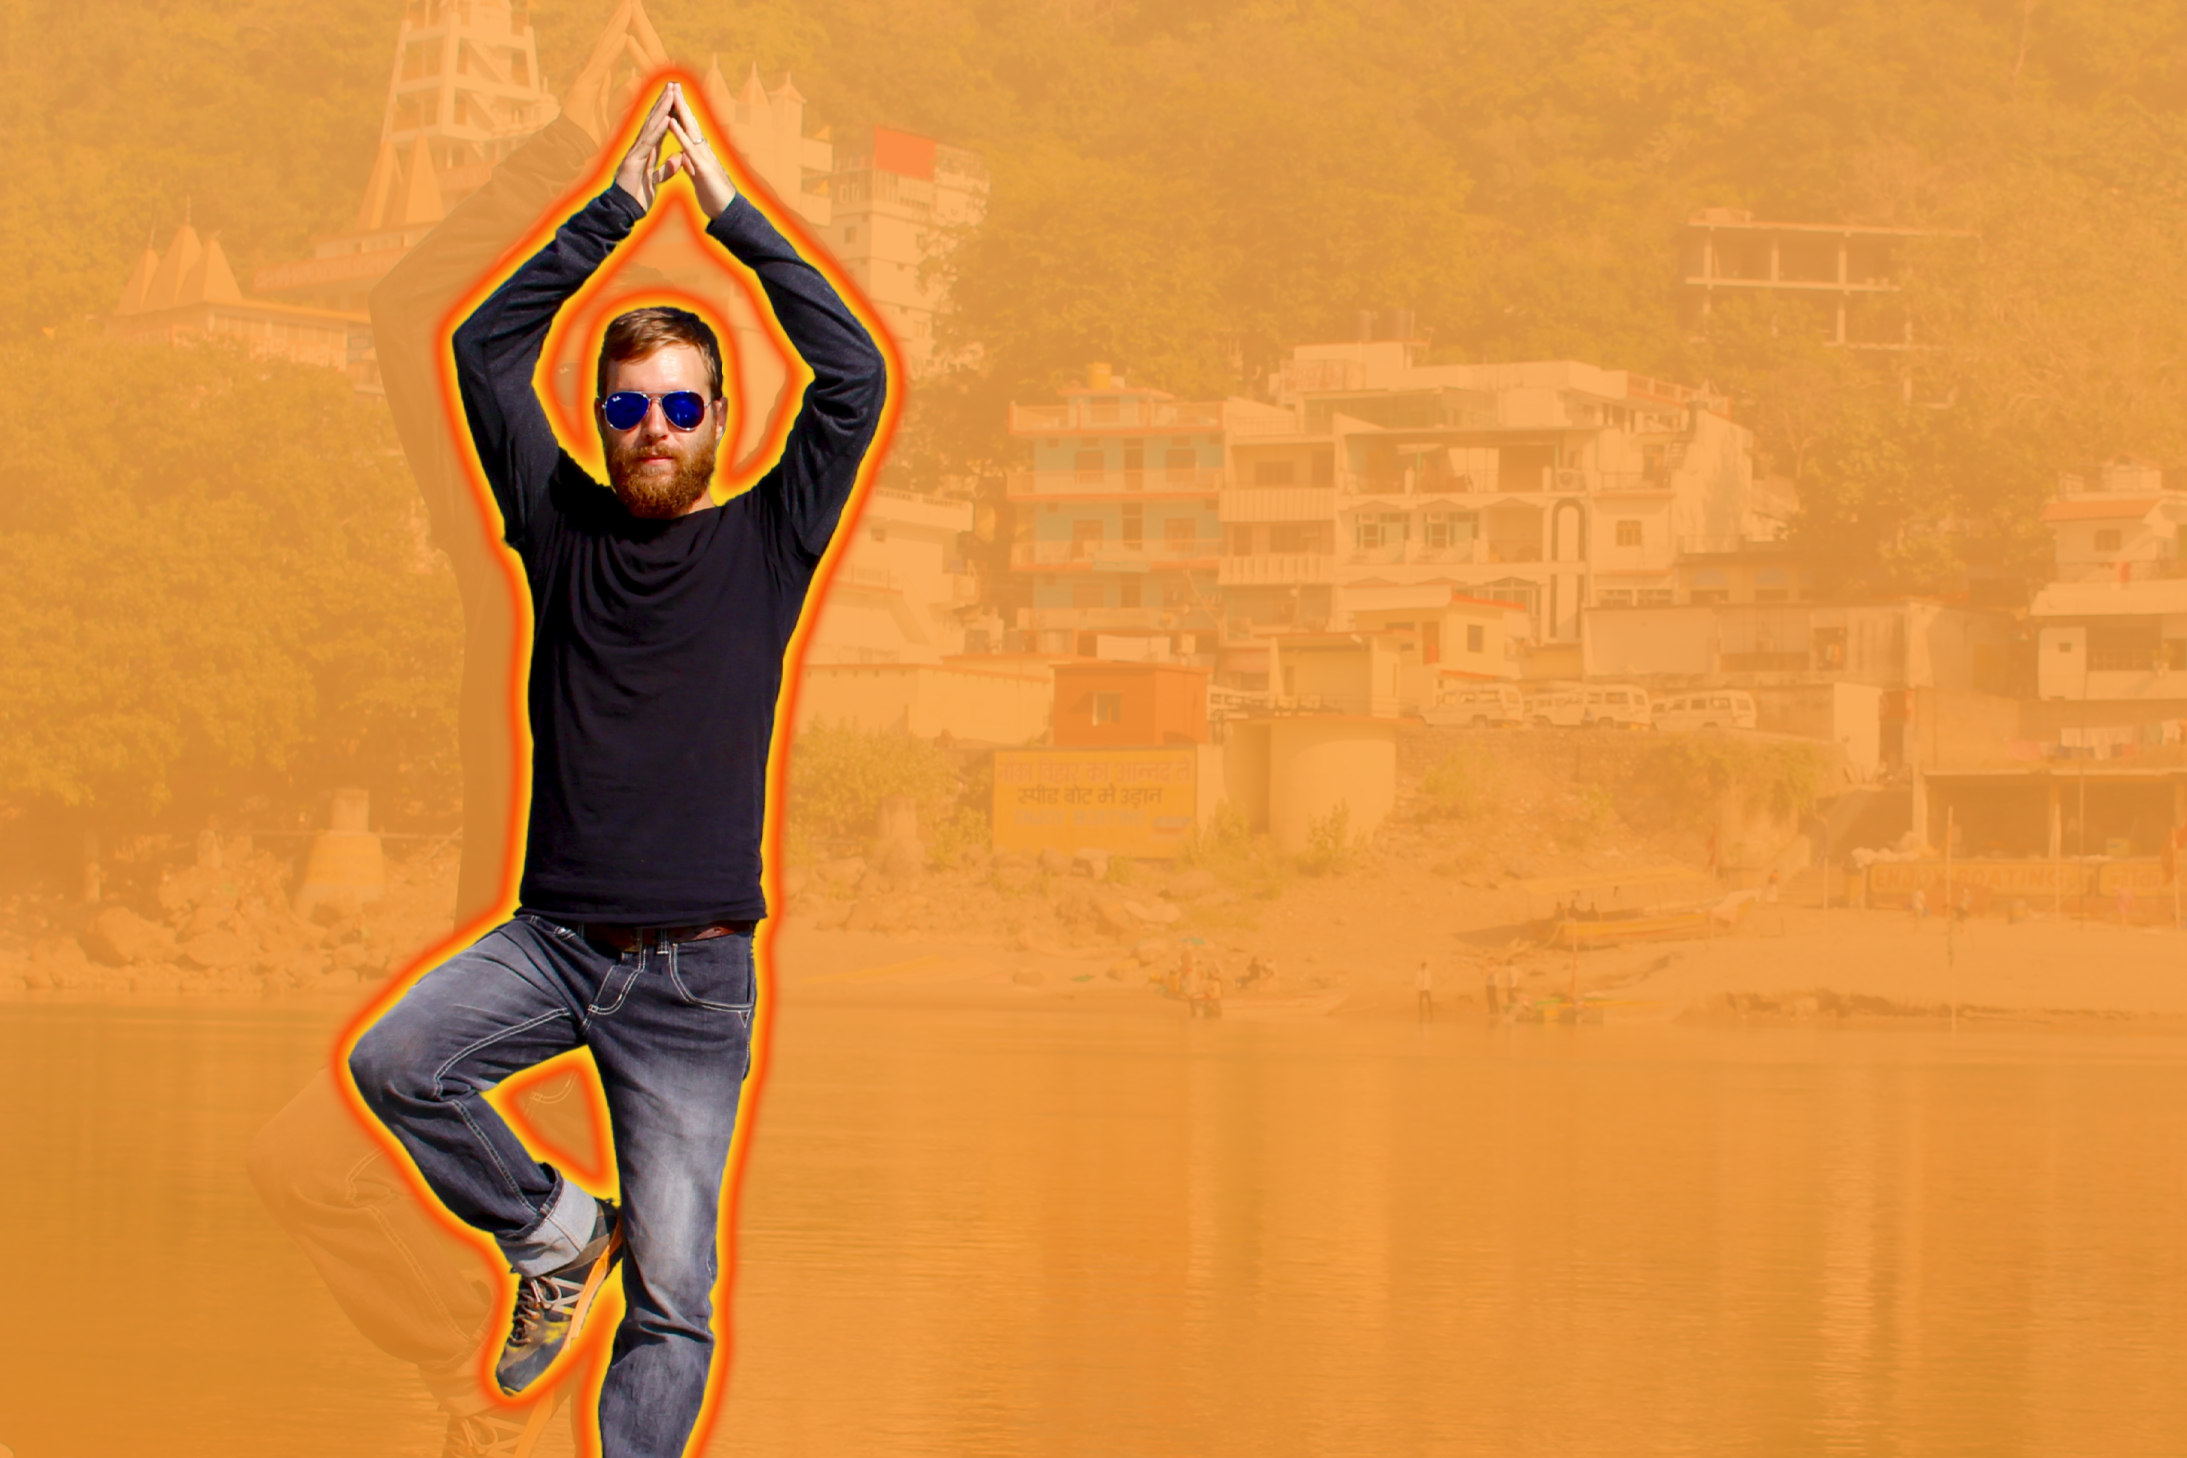 Man doing a tree pose in front of an orange background